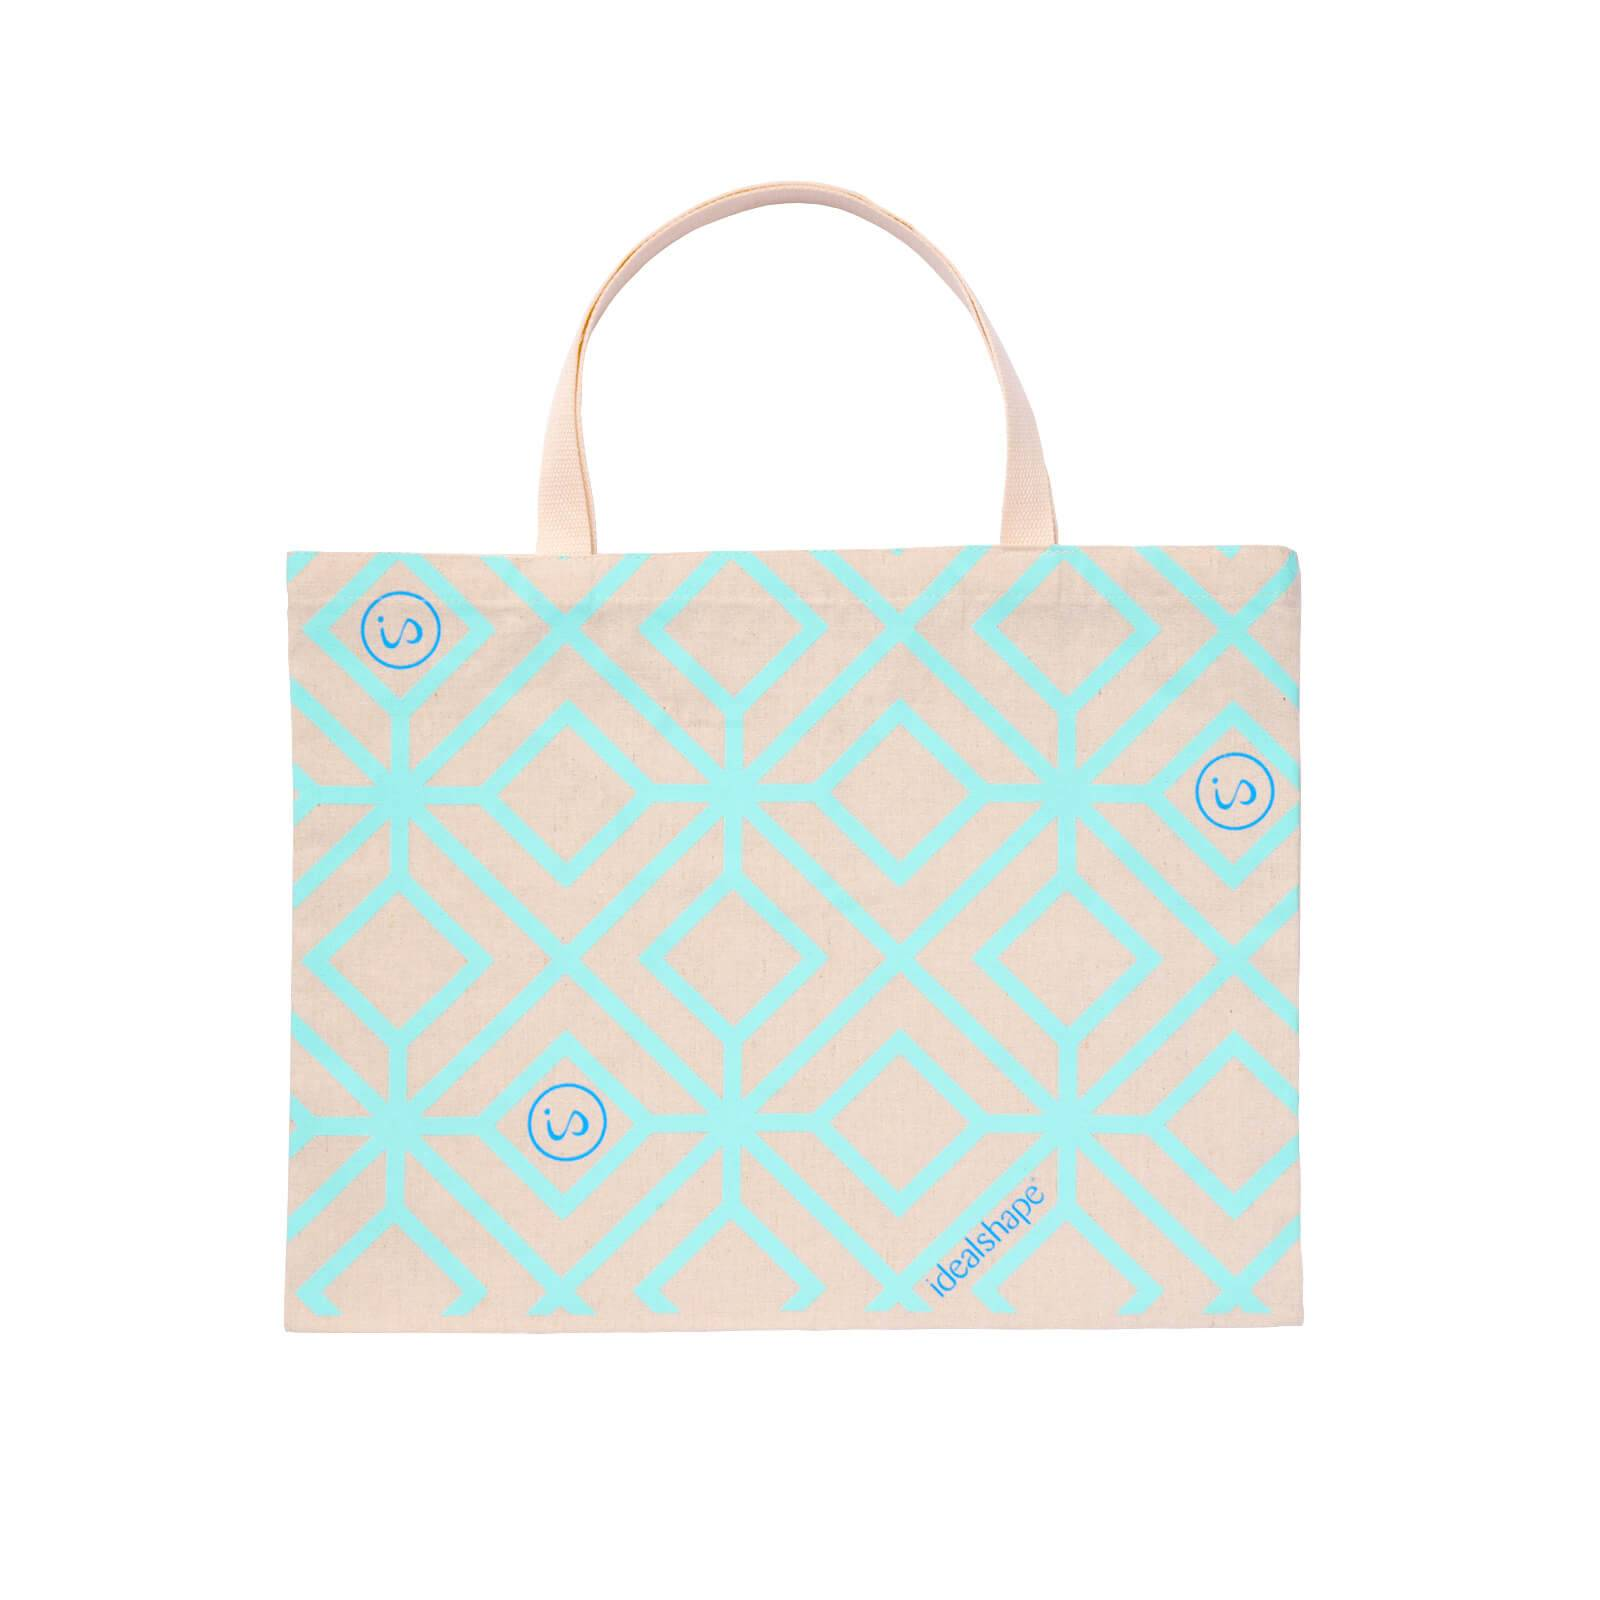 IdealShape Limited Edition IdealTote Bag